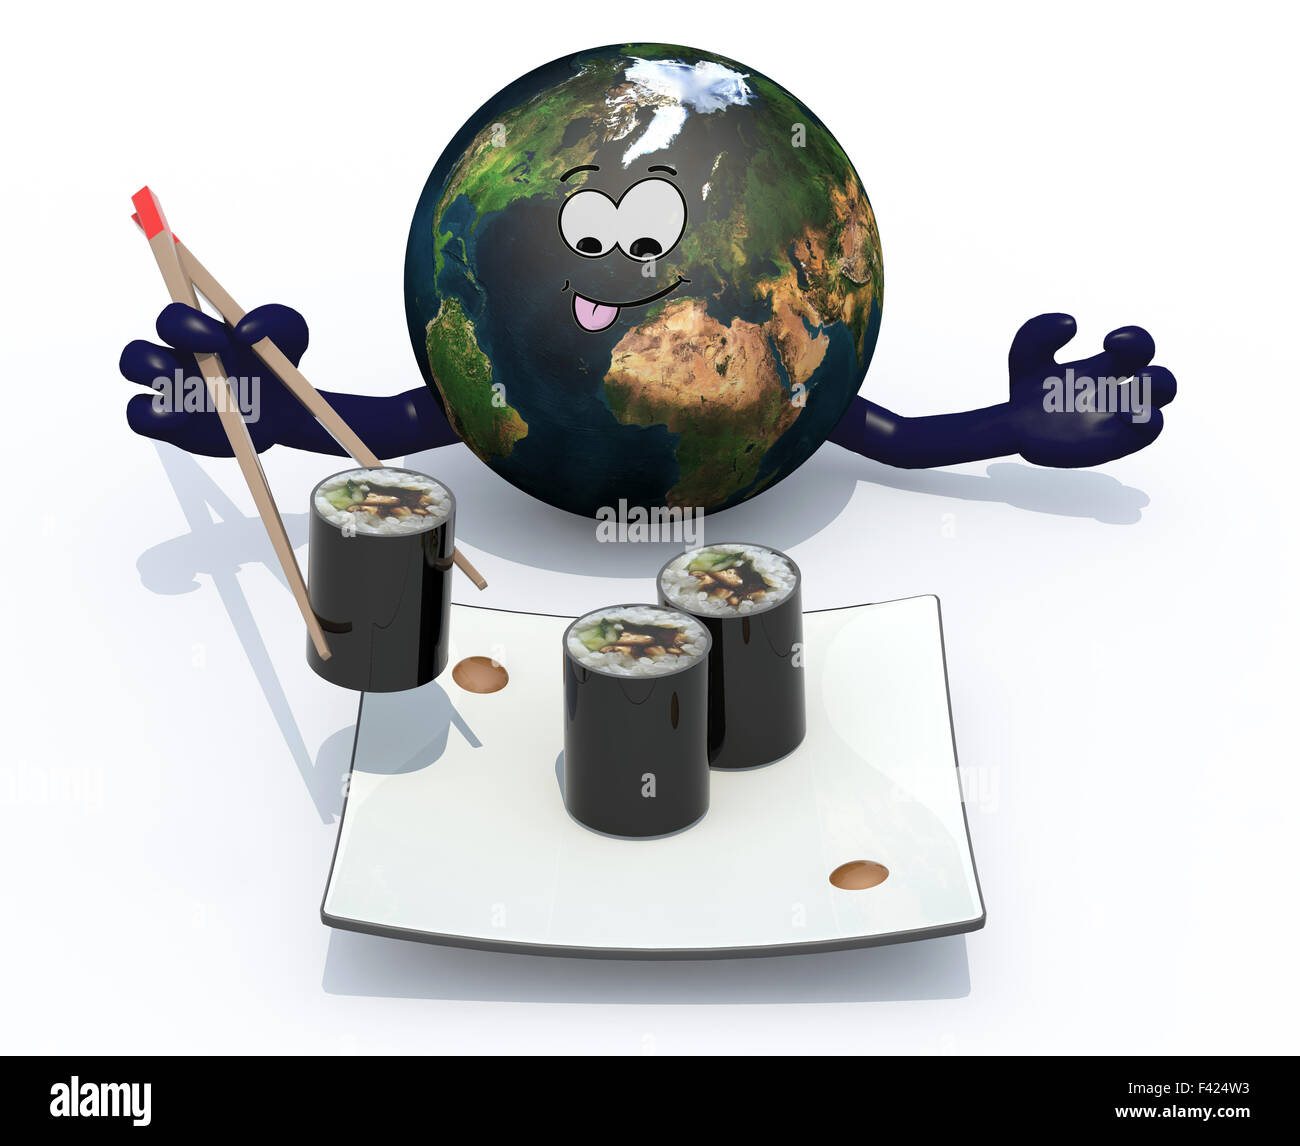 planet earth eating sushi with chopsticks, 3d illustration isolated on white background - Stock Image